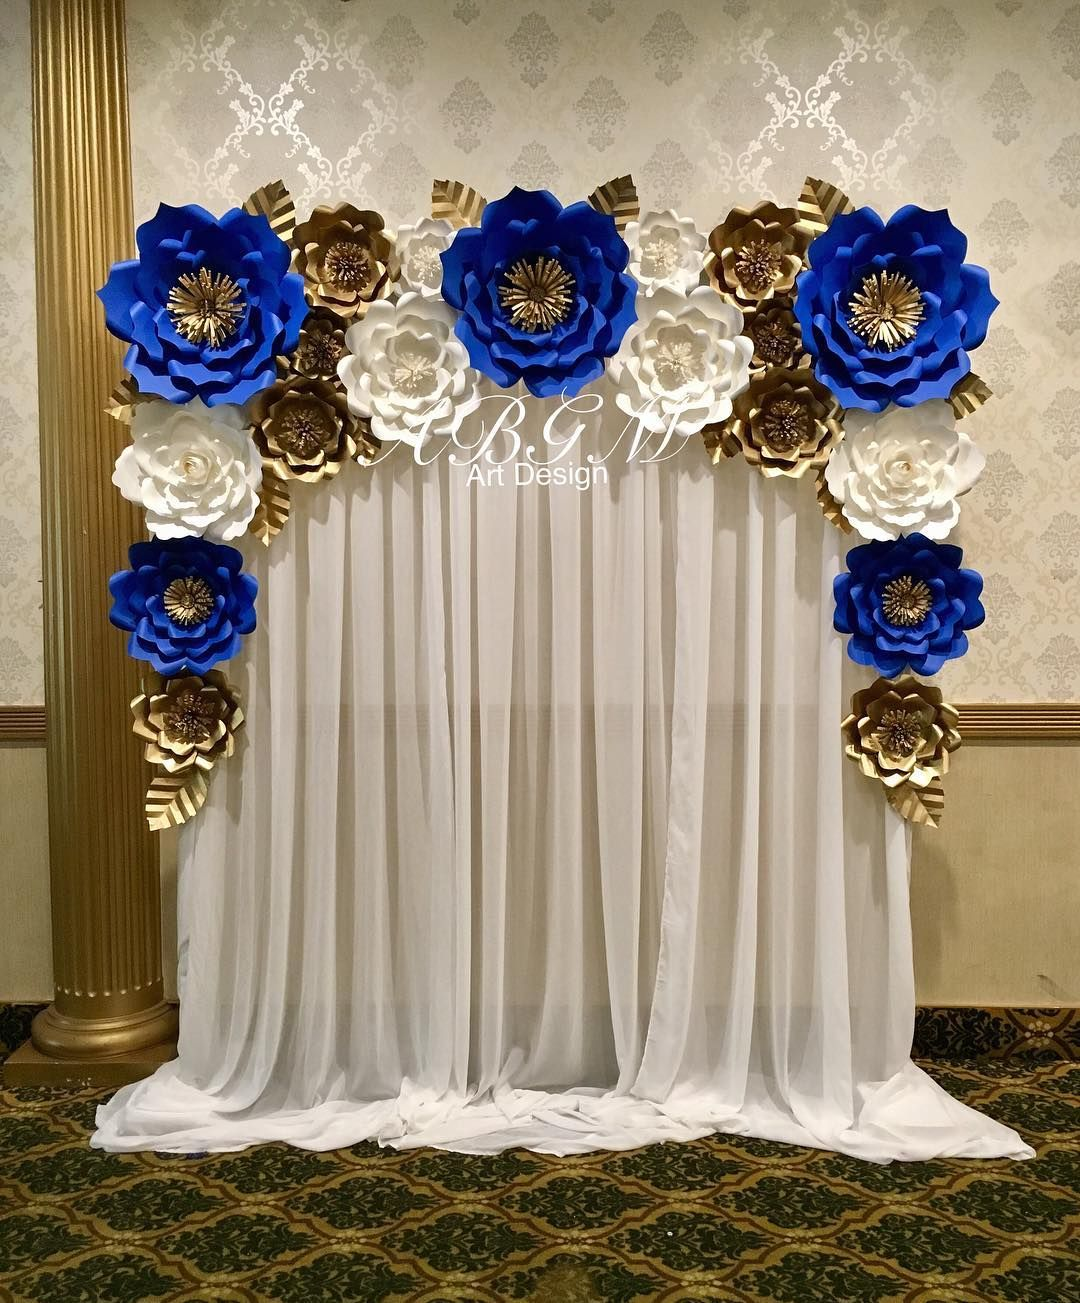 Xft PAPER FLOWERS BACKDROP in colors Royal blue white and gold